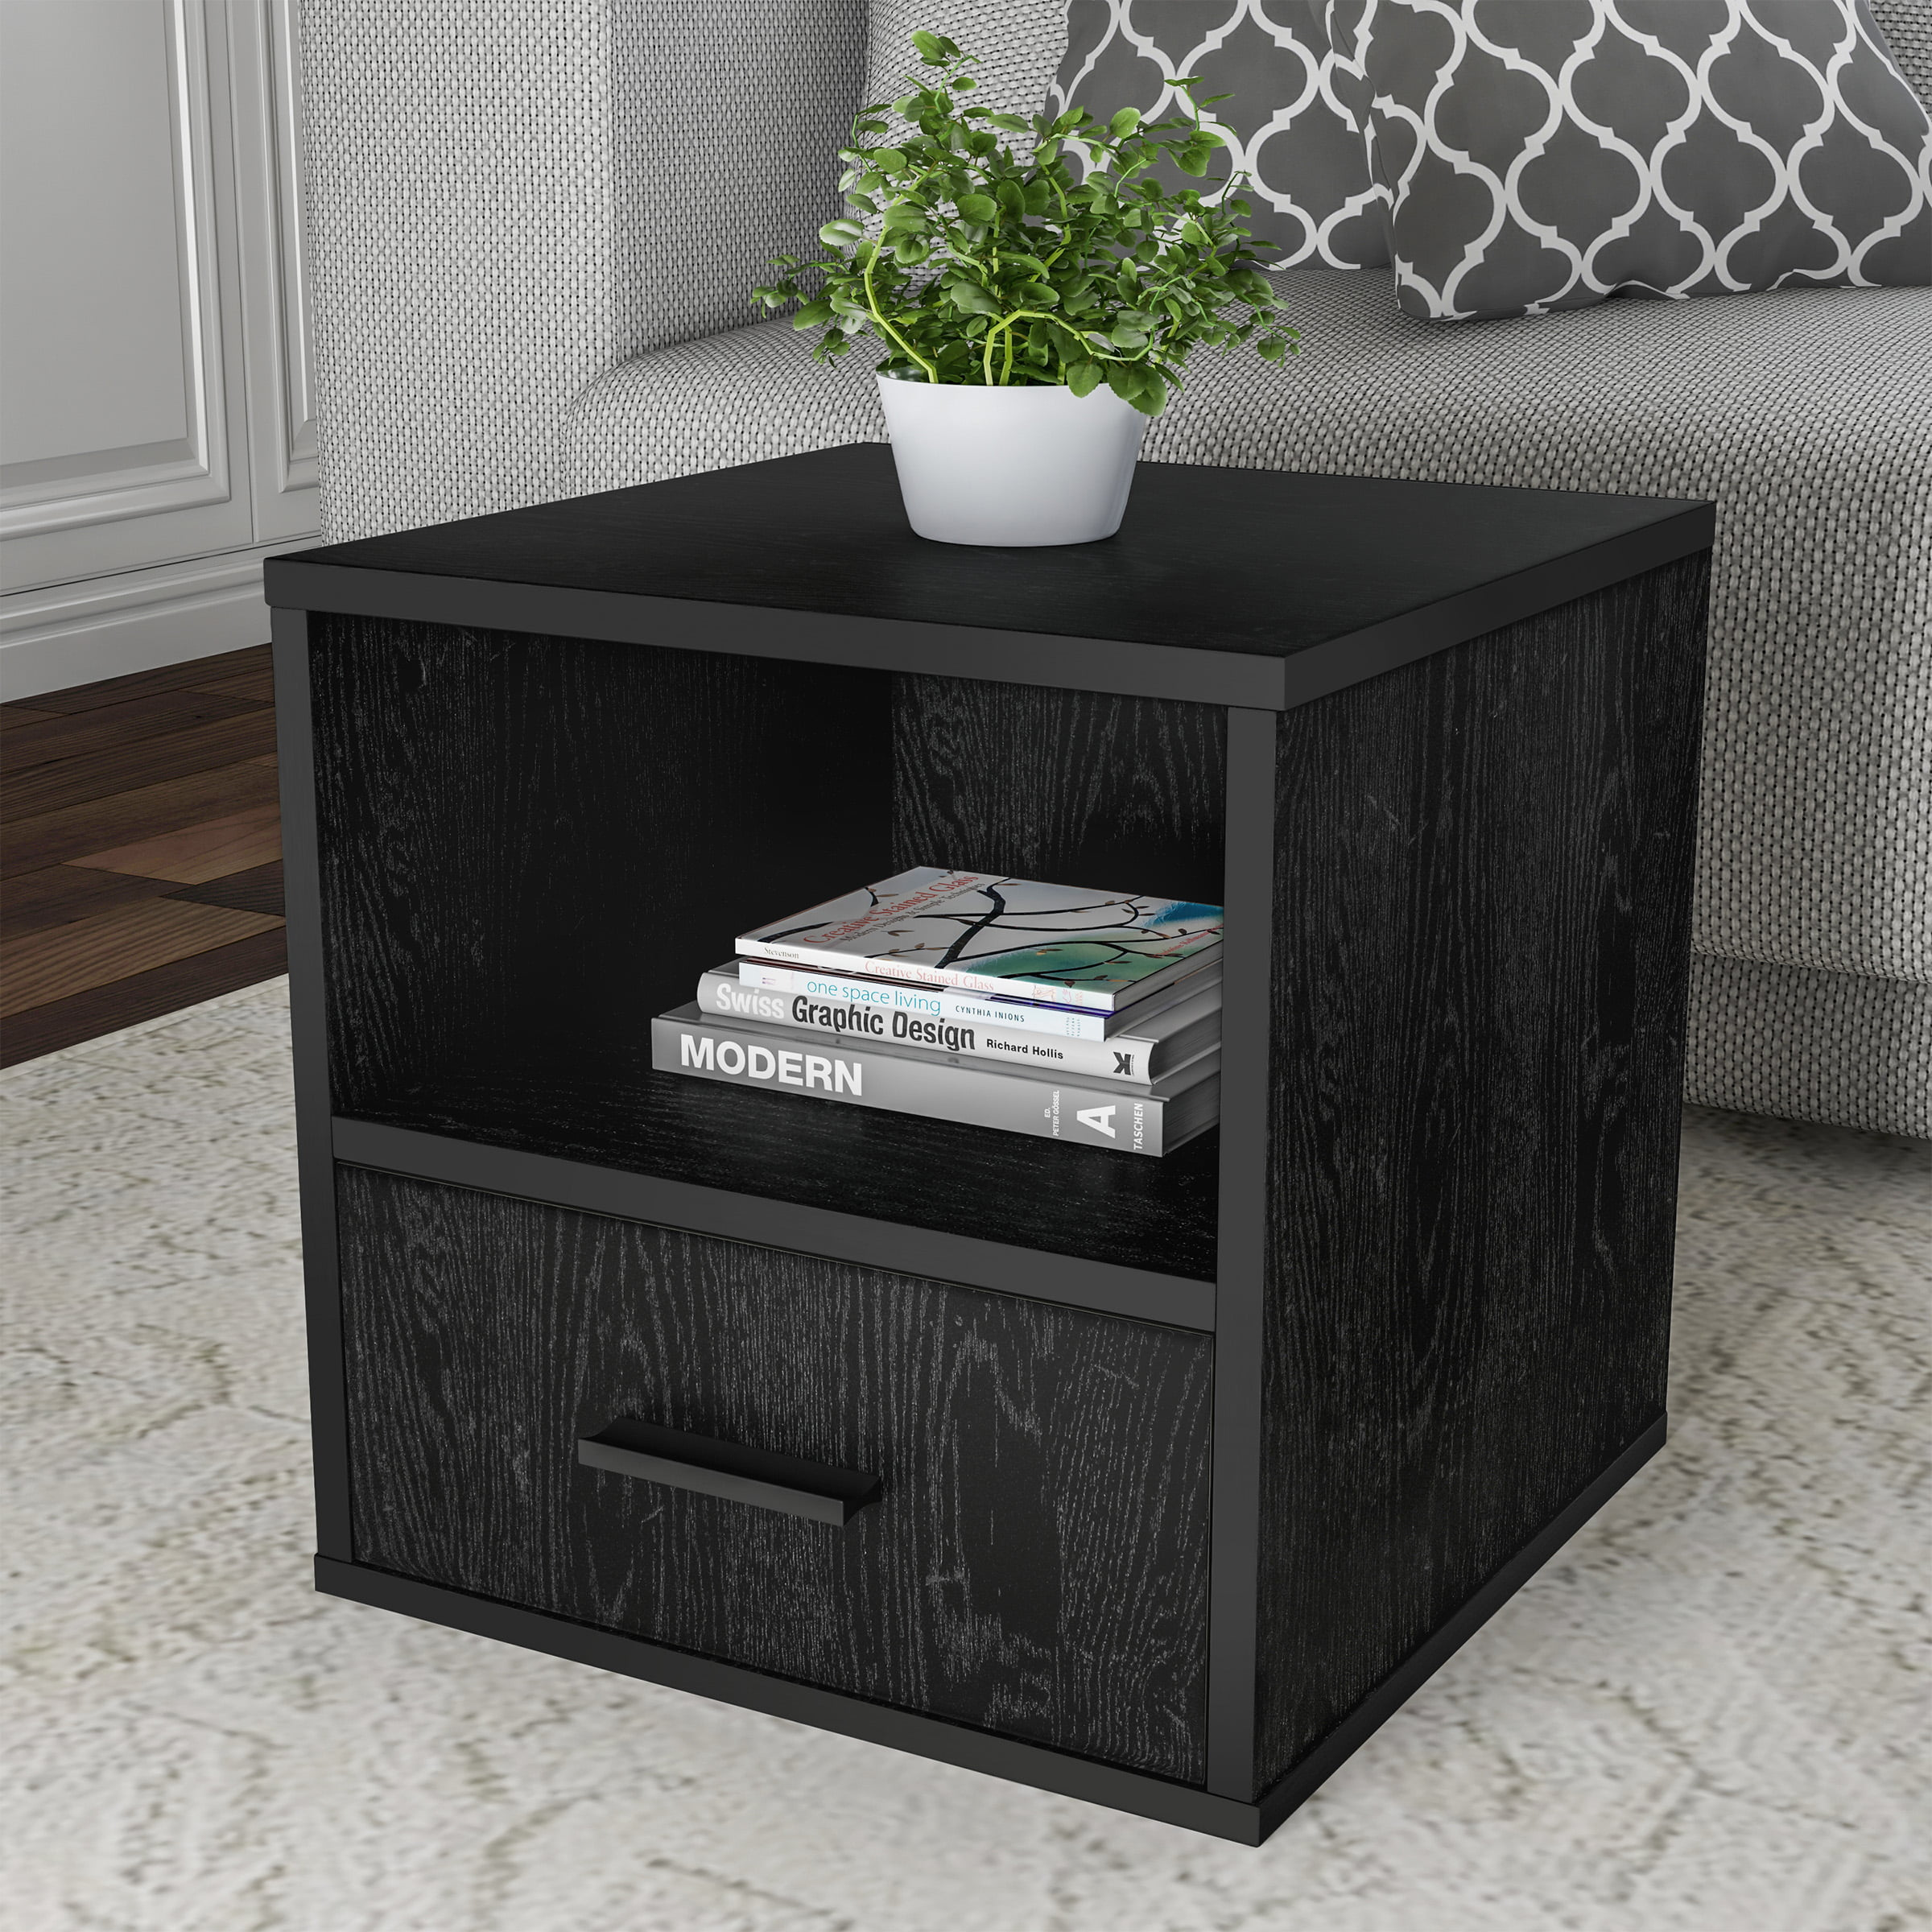 Lavish Home End Table Stackable Contemporary Minimalist Modular Cube Accent Table With Drawer Black Walmart Com Walmart Com